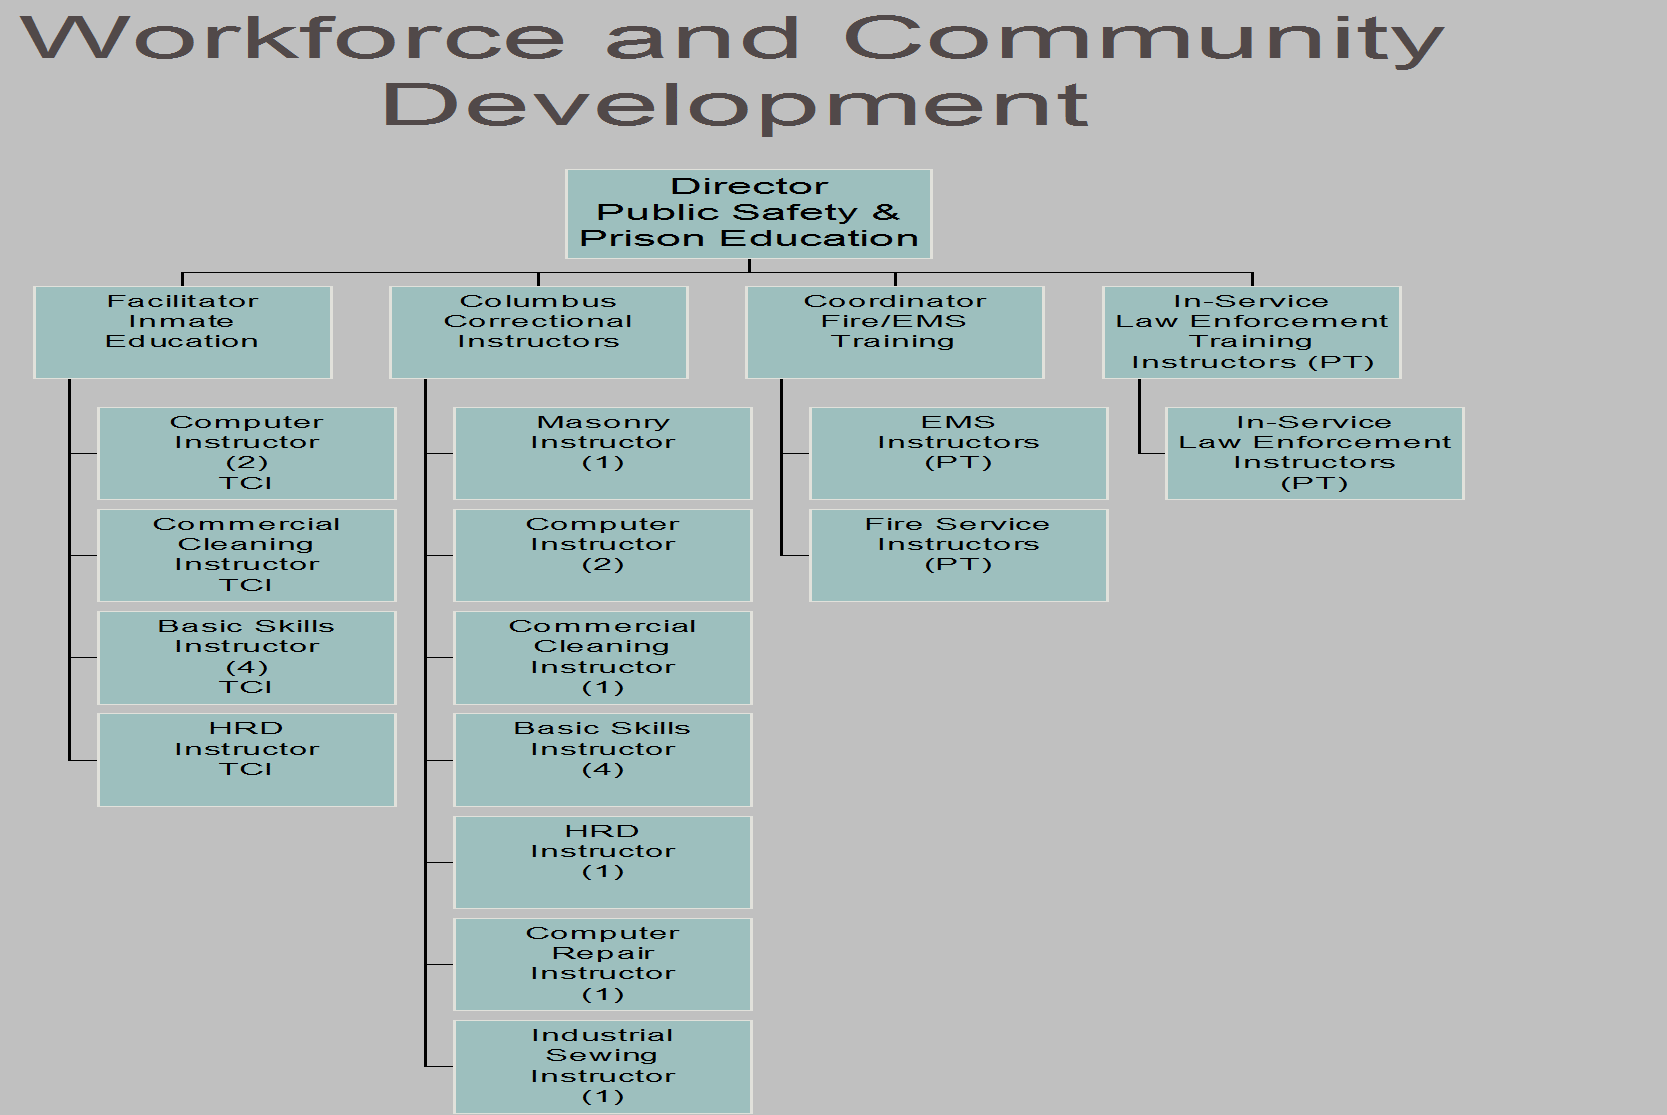 Workforce and Community Development 2